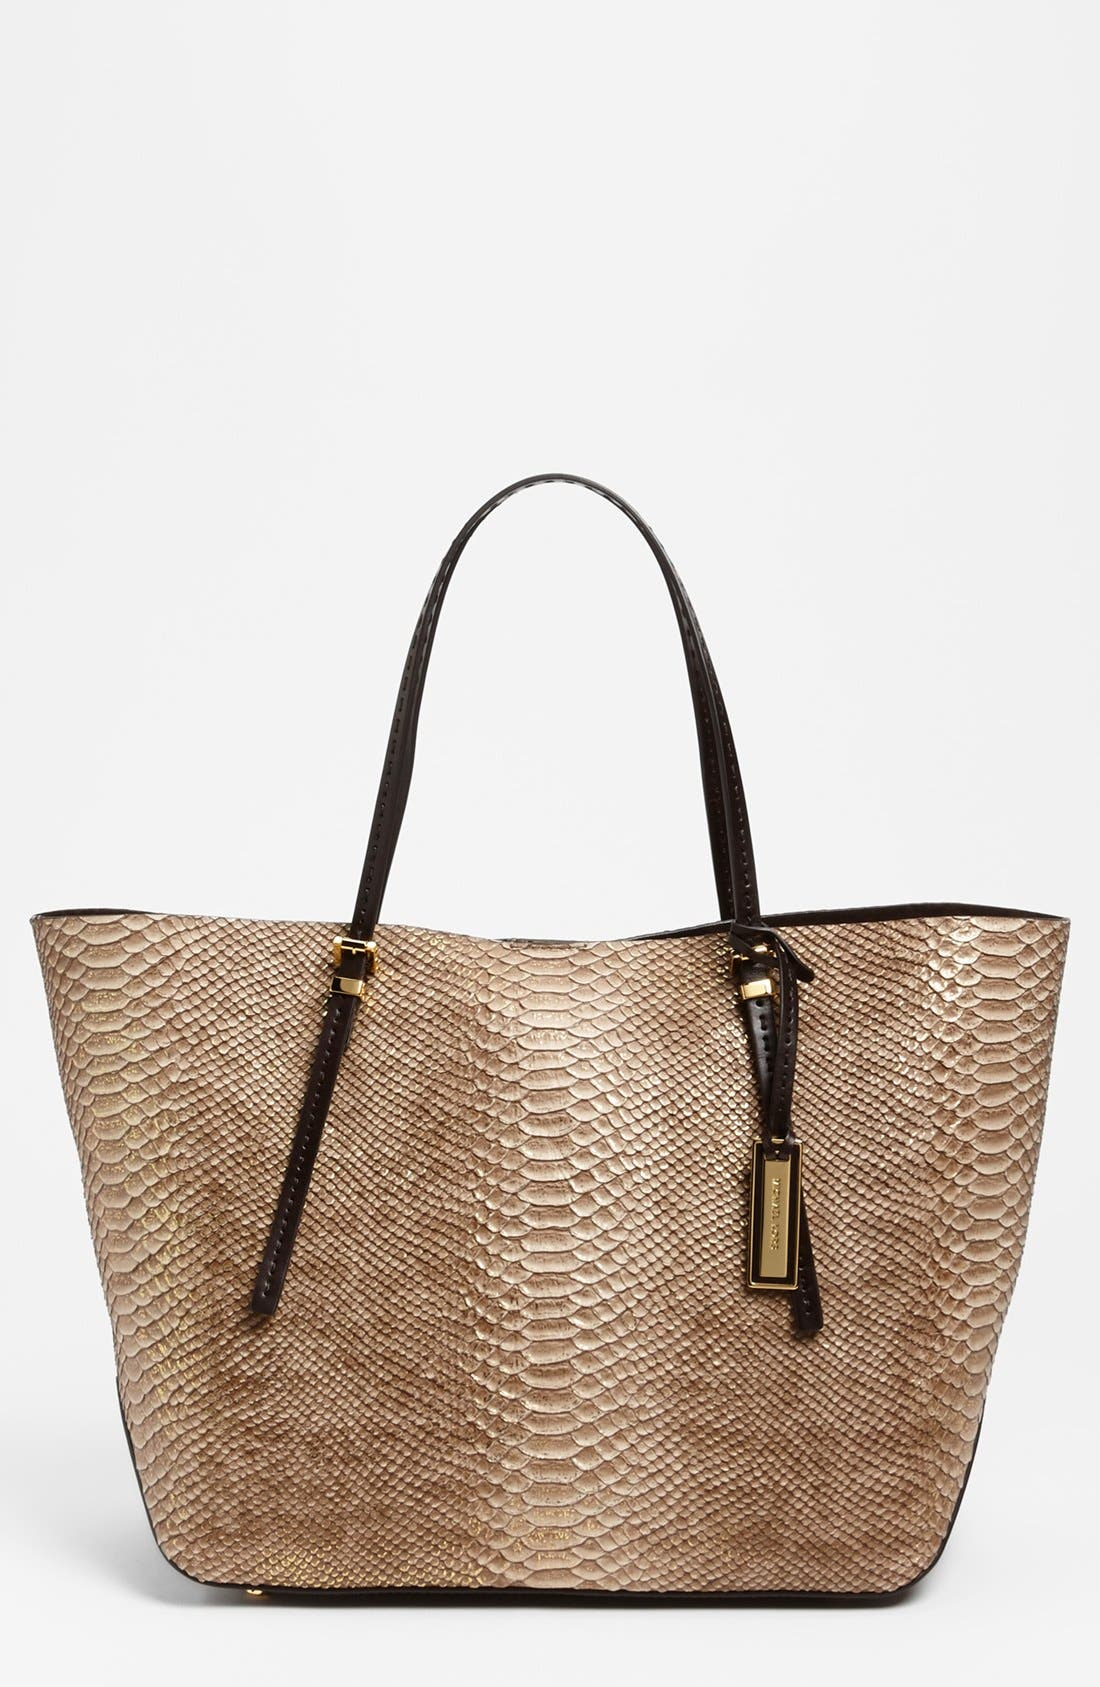 Main Image - Michael Kors 'Gia' Python Embossed Leather Tote, Large